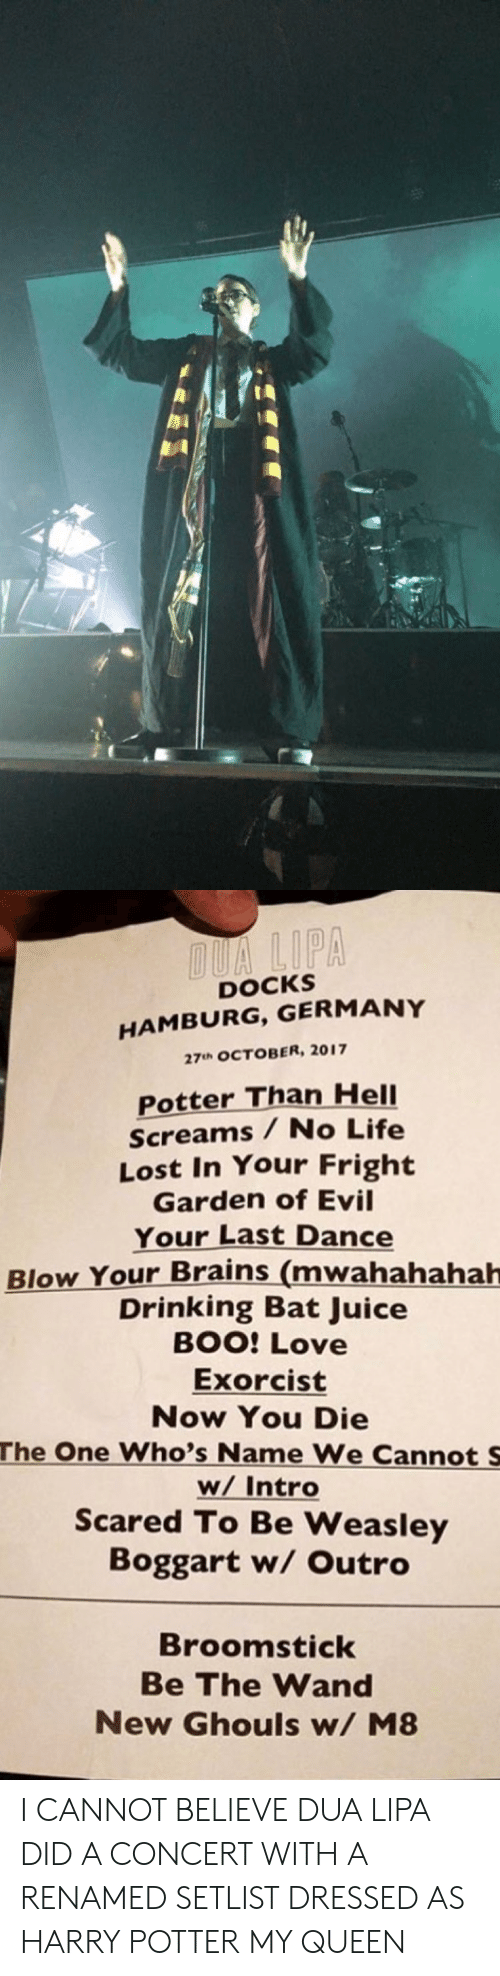 hamburg: DOCKS  HAMBURG, GERMANY  27uh OCTOBER, 2017  Potter Than HelI  Screams / No Life  Lost In Your Fright  Garden of Evil  Your Last Dance  Blow Your Brains (mwahahahah  Drinking Bat Juice  BOO: Love  Exorcist  Now You Die  The One Who's Name We Cannot S  w/ Intro  Scared To Be Weasley  Boggart w/ Outro  Broomstick  Be The Wand  New Ghouls w/ M8 I CANNOT BELIEVE DUA LIPA DID A CONCERT WITH A RENAMED SETLIST DRESSED AS HARRY POTTER MY QUEEN